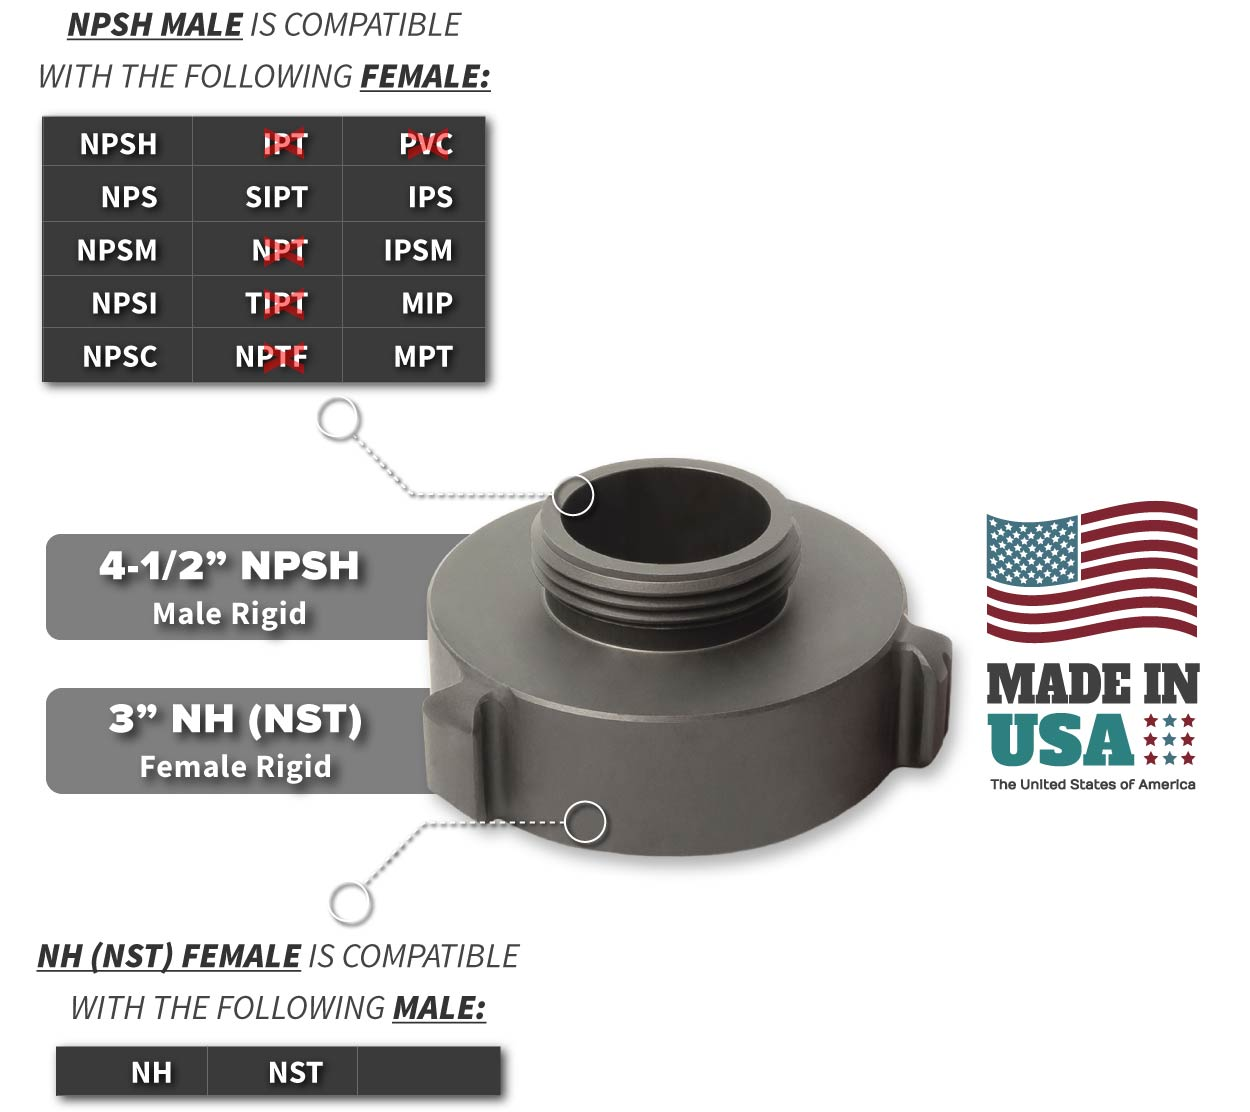 3 Inch NH-NST Female x 4.5 Inch NPSH Male Compatibility Thread Chart